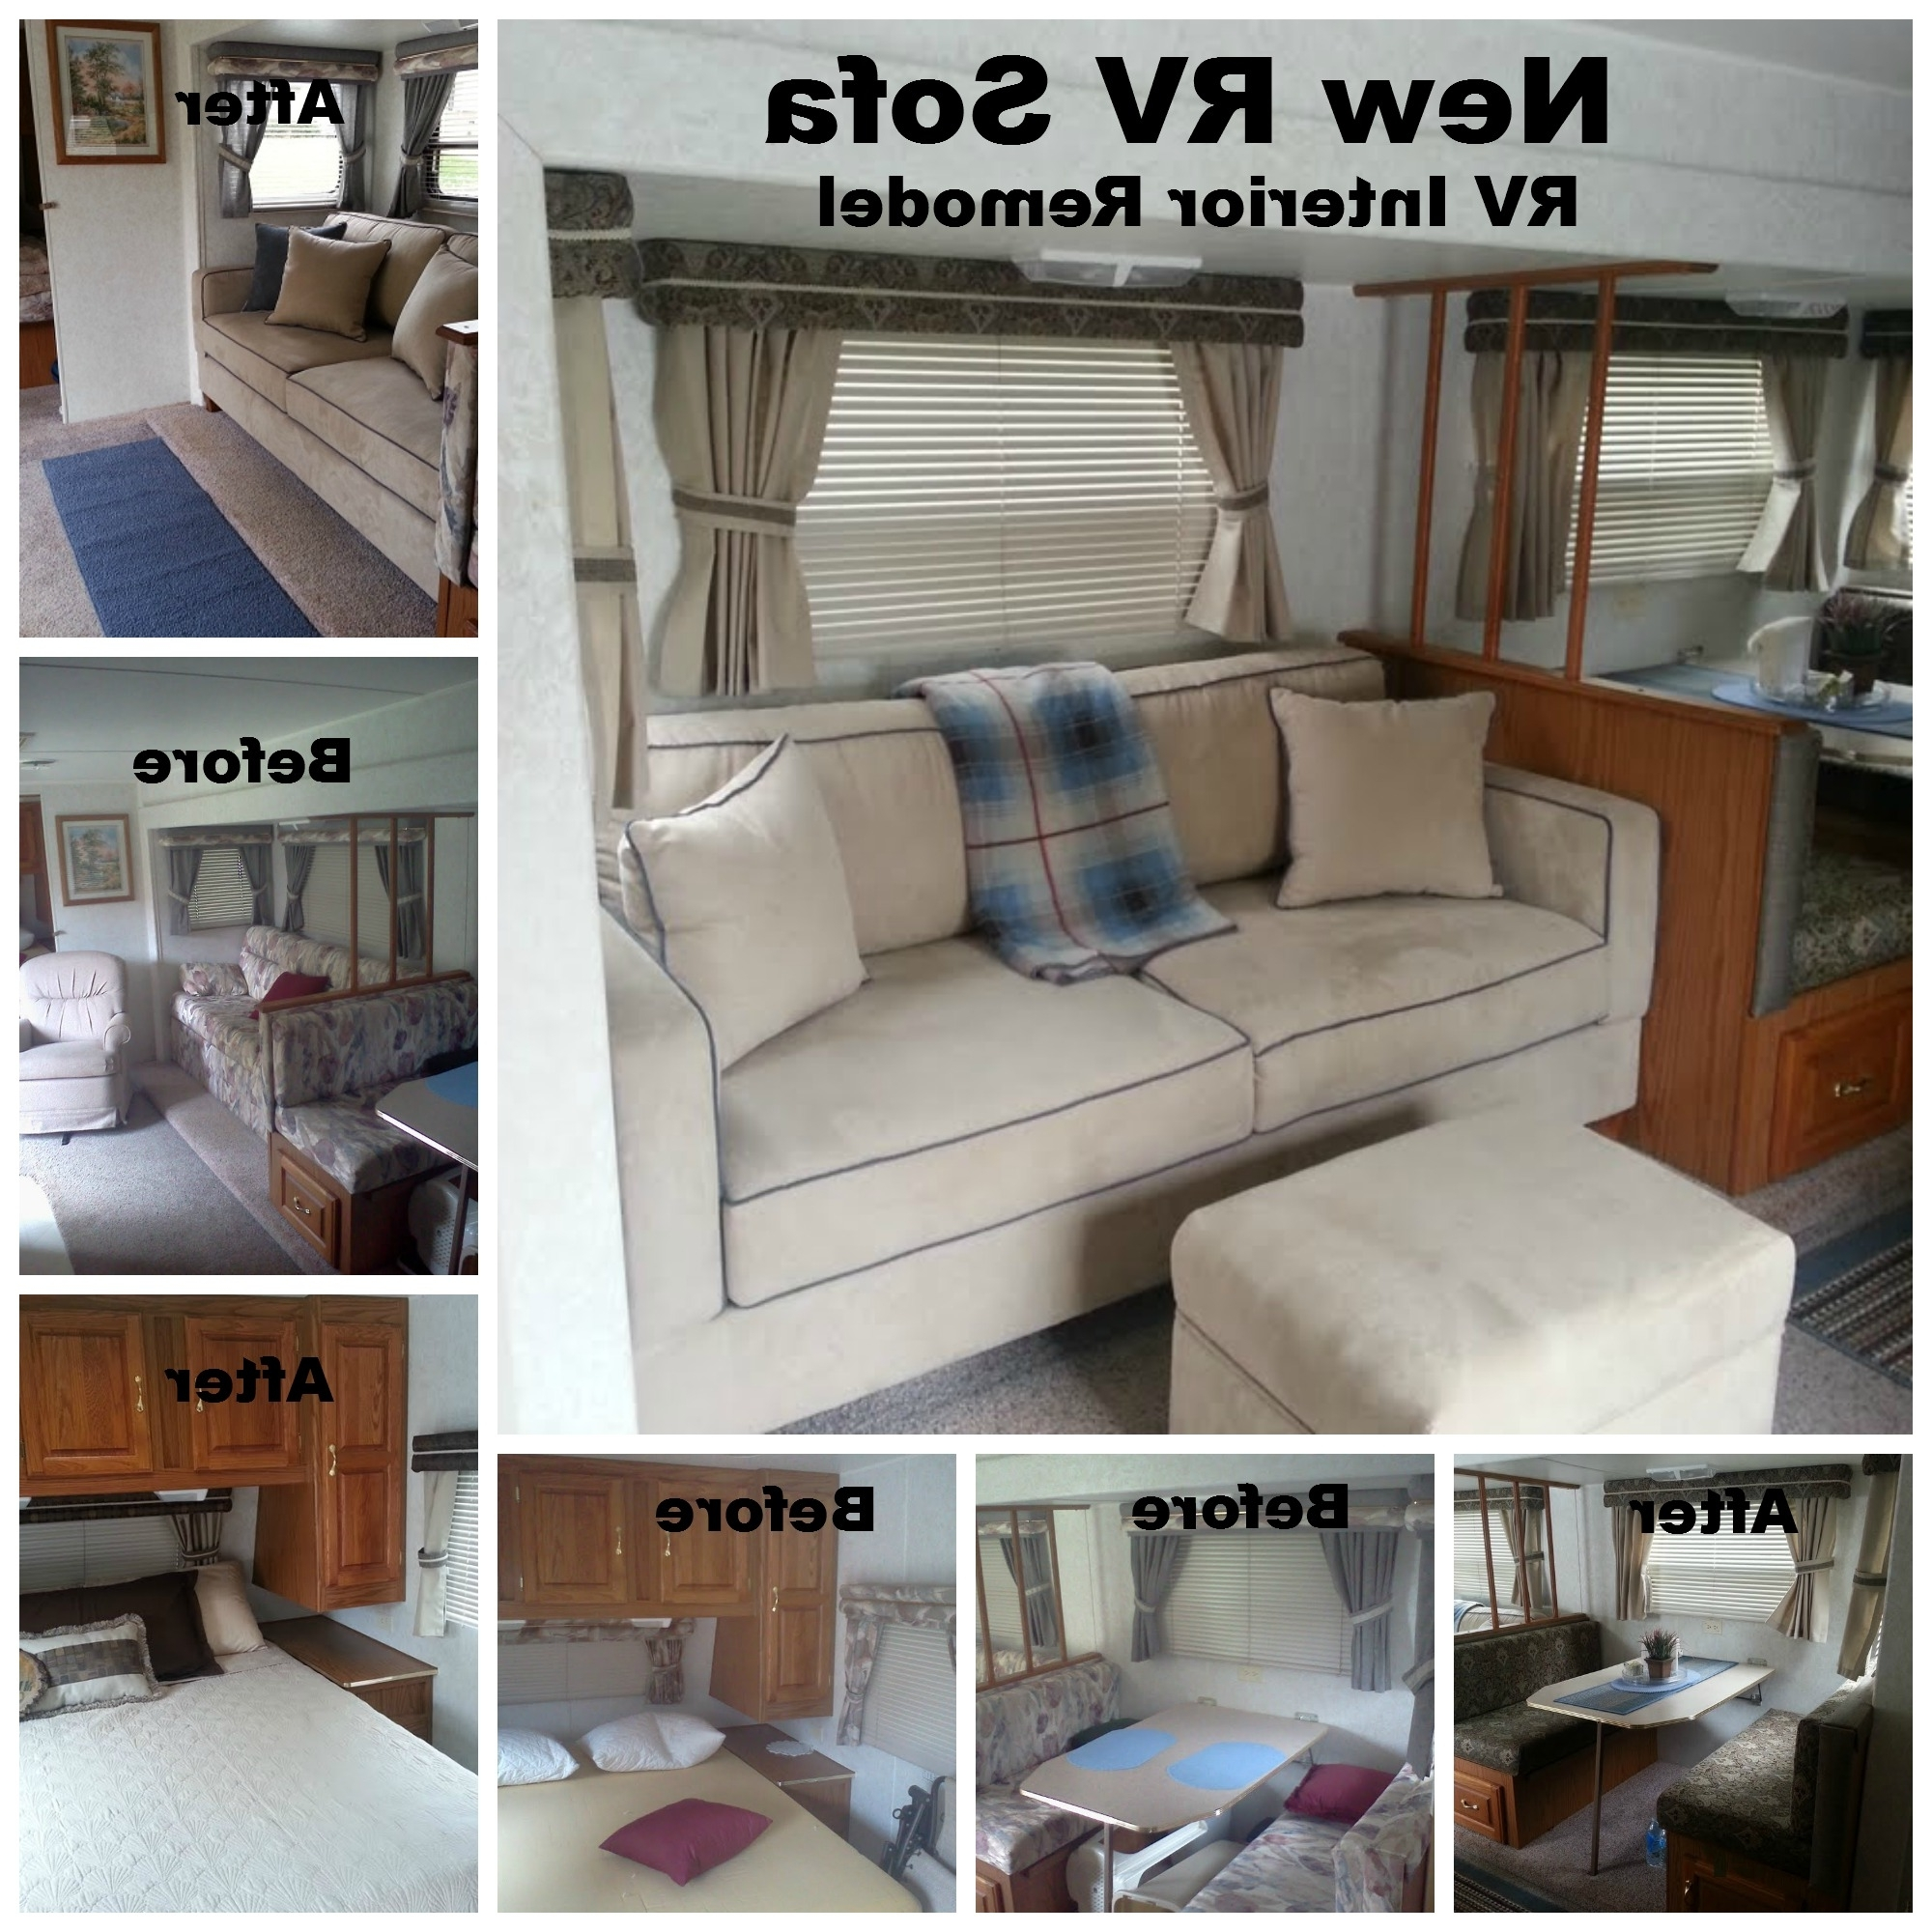 "Recent Sectional Sofas For Campers For My Rv (1999 Jayco) Remodel With My New Sofa 72"" X 34"" Sofa Fit (Gallery 6 of 20)"